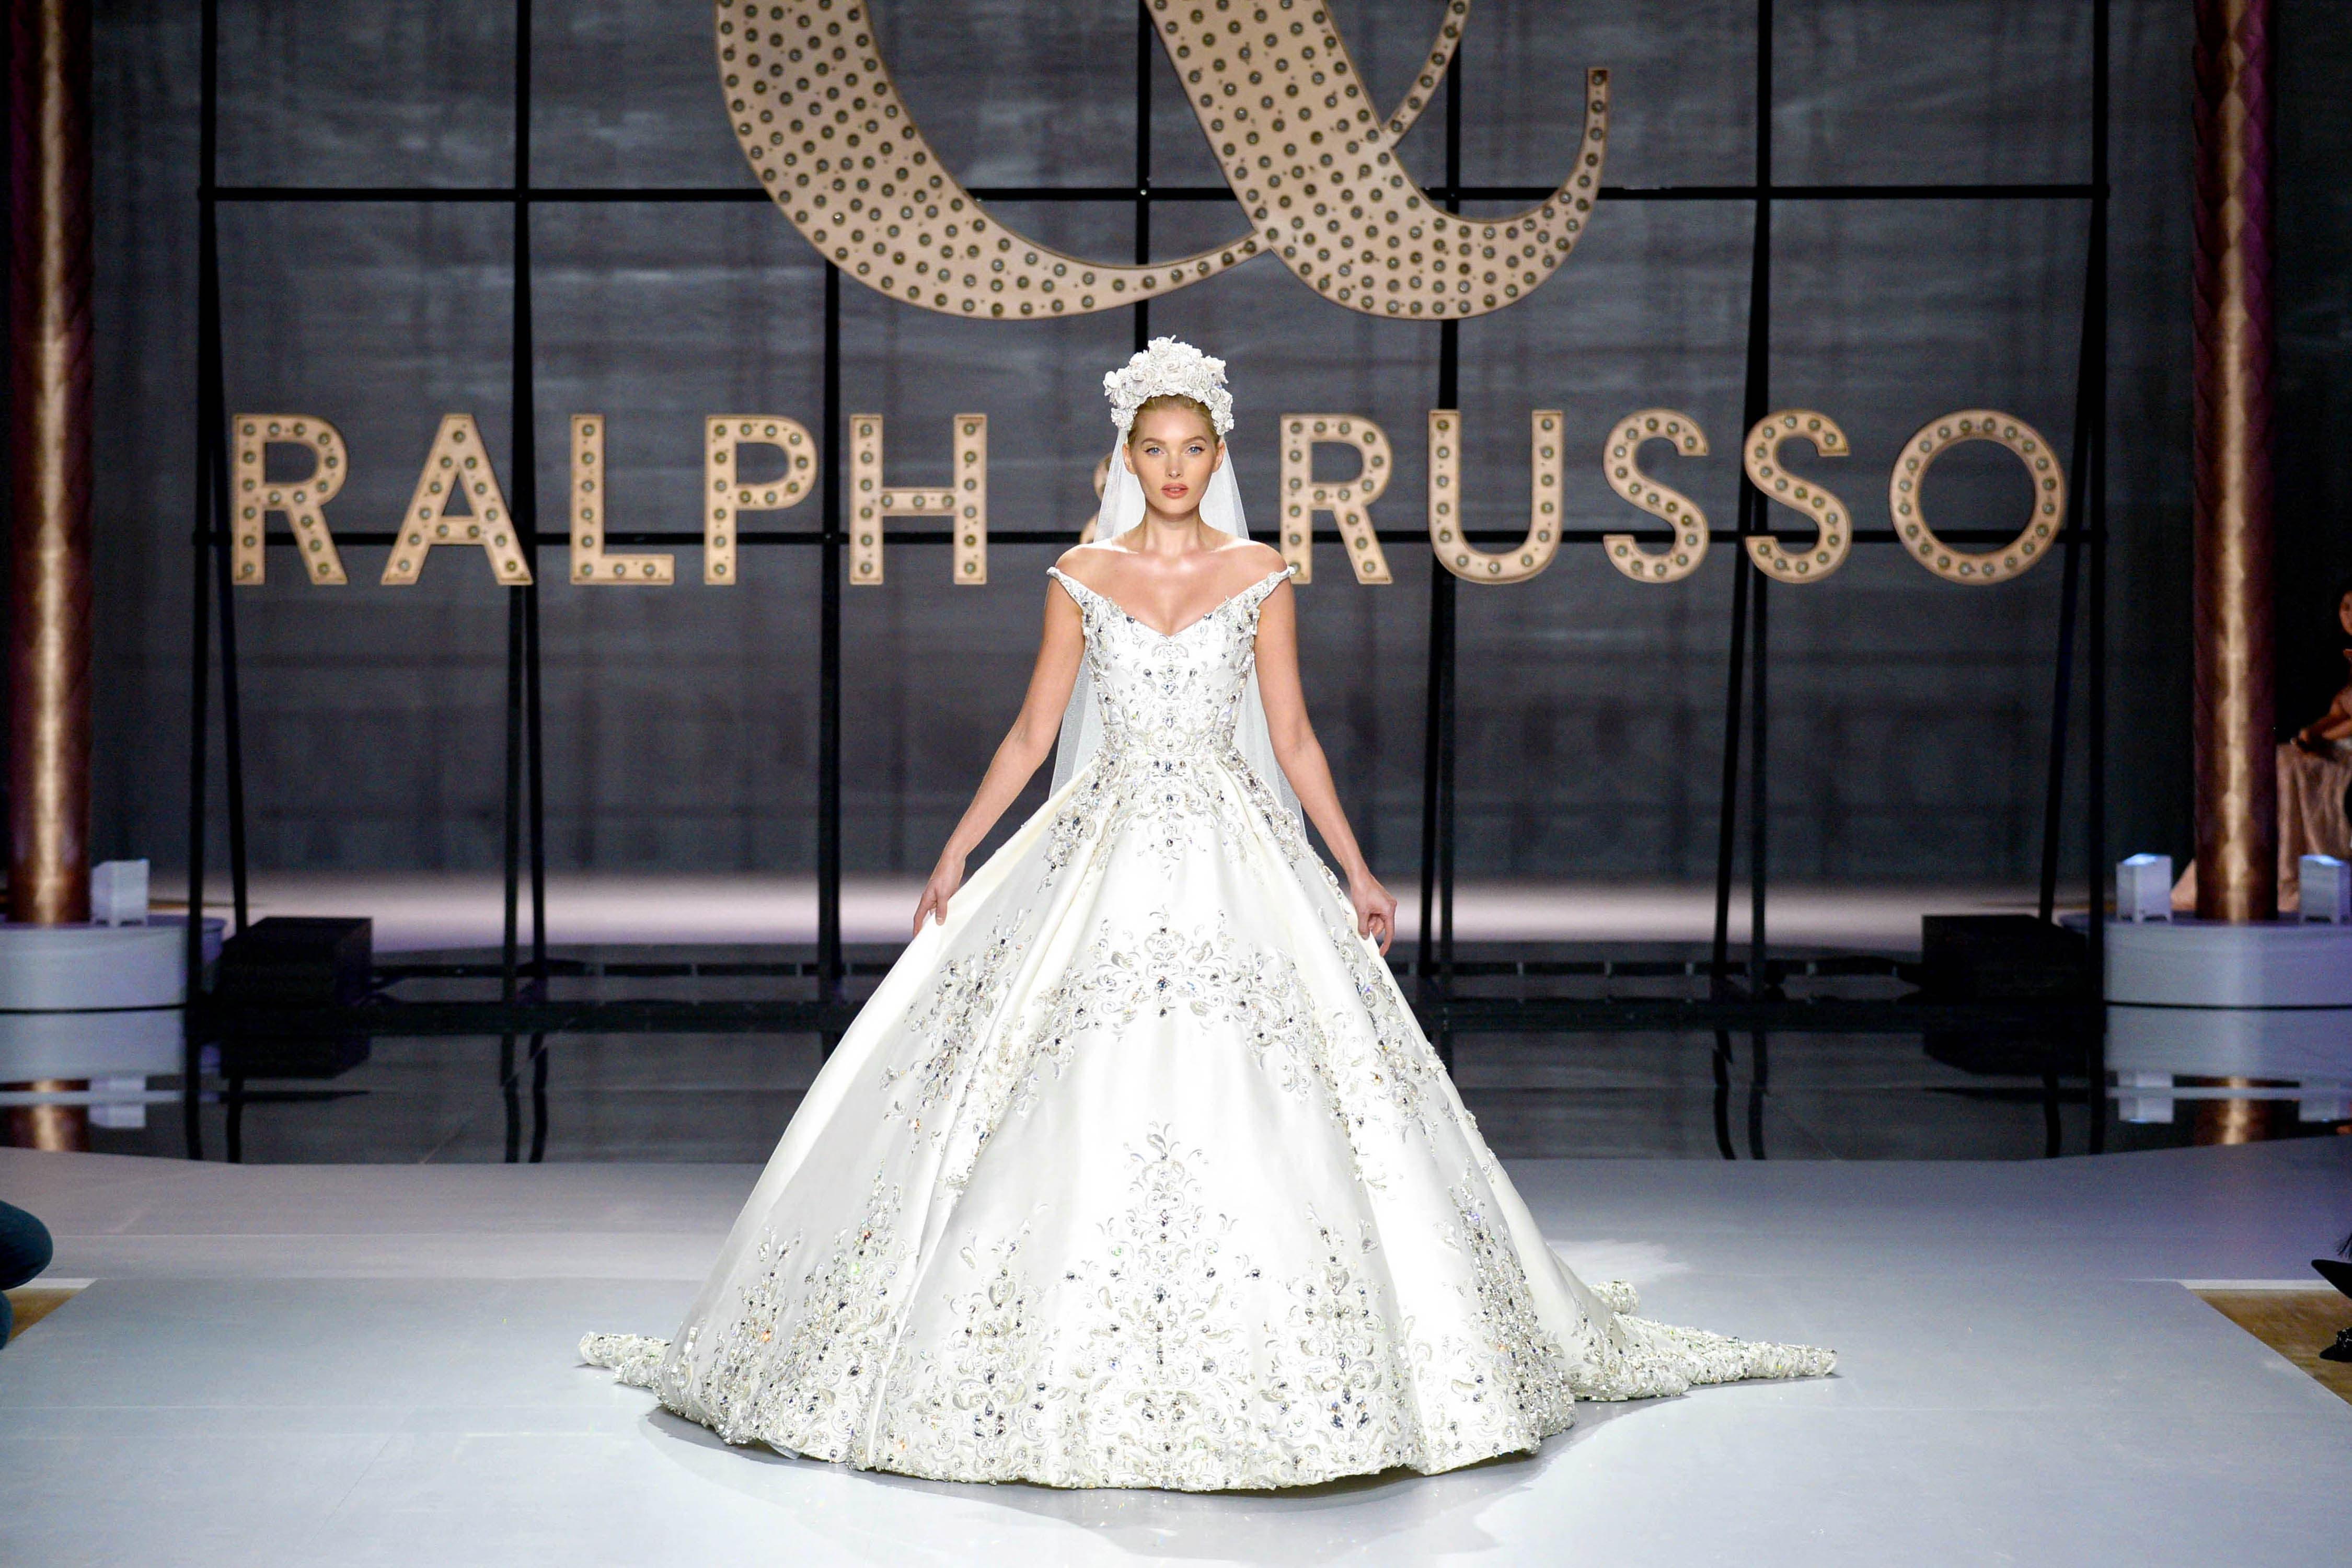 Image: Courtesy Ralph & Russo